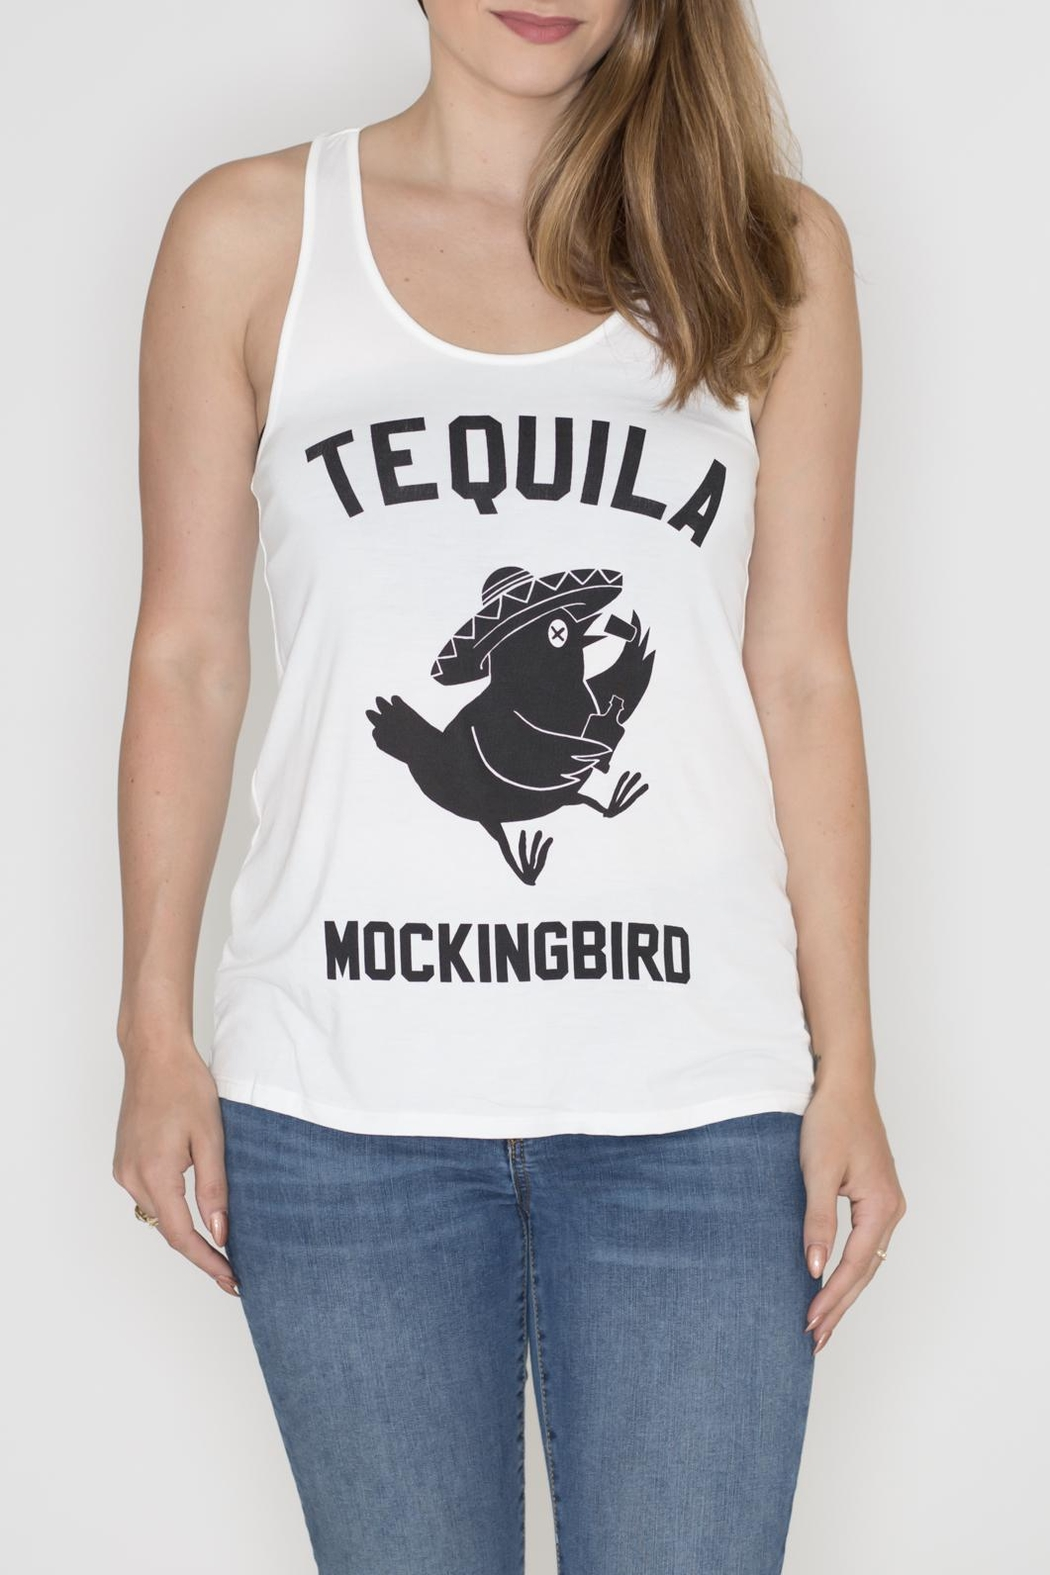 Bear Dance Tequila Mockingbird Tank Top - Front Cropped Image